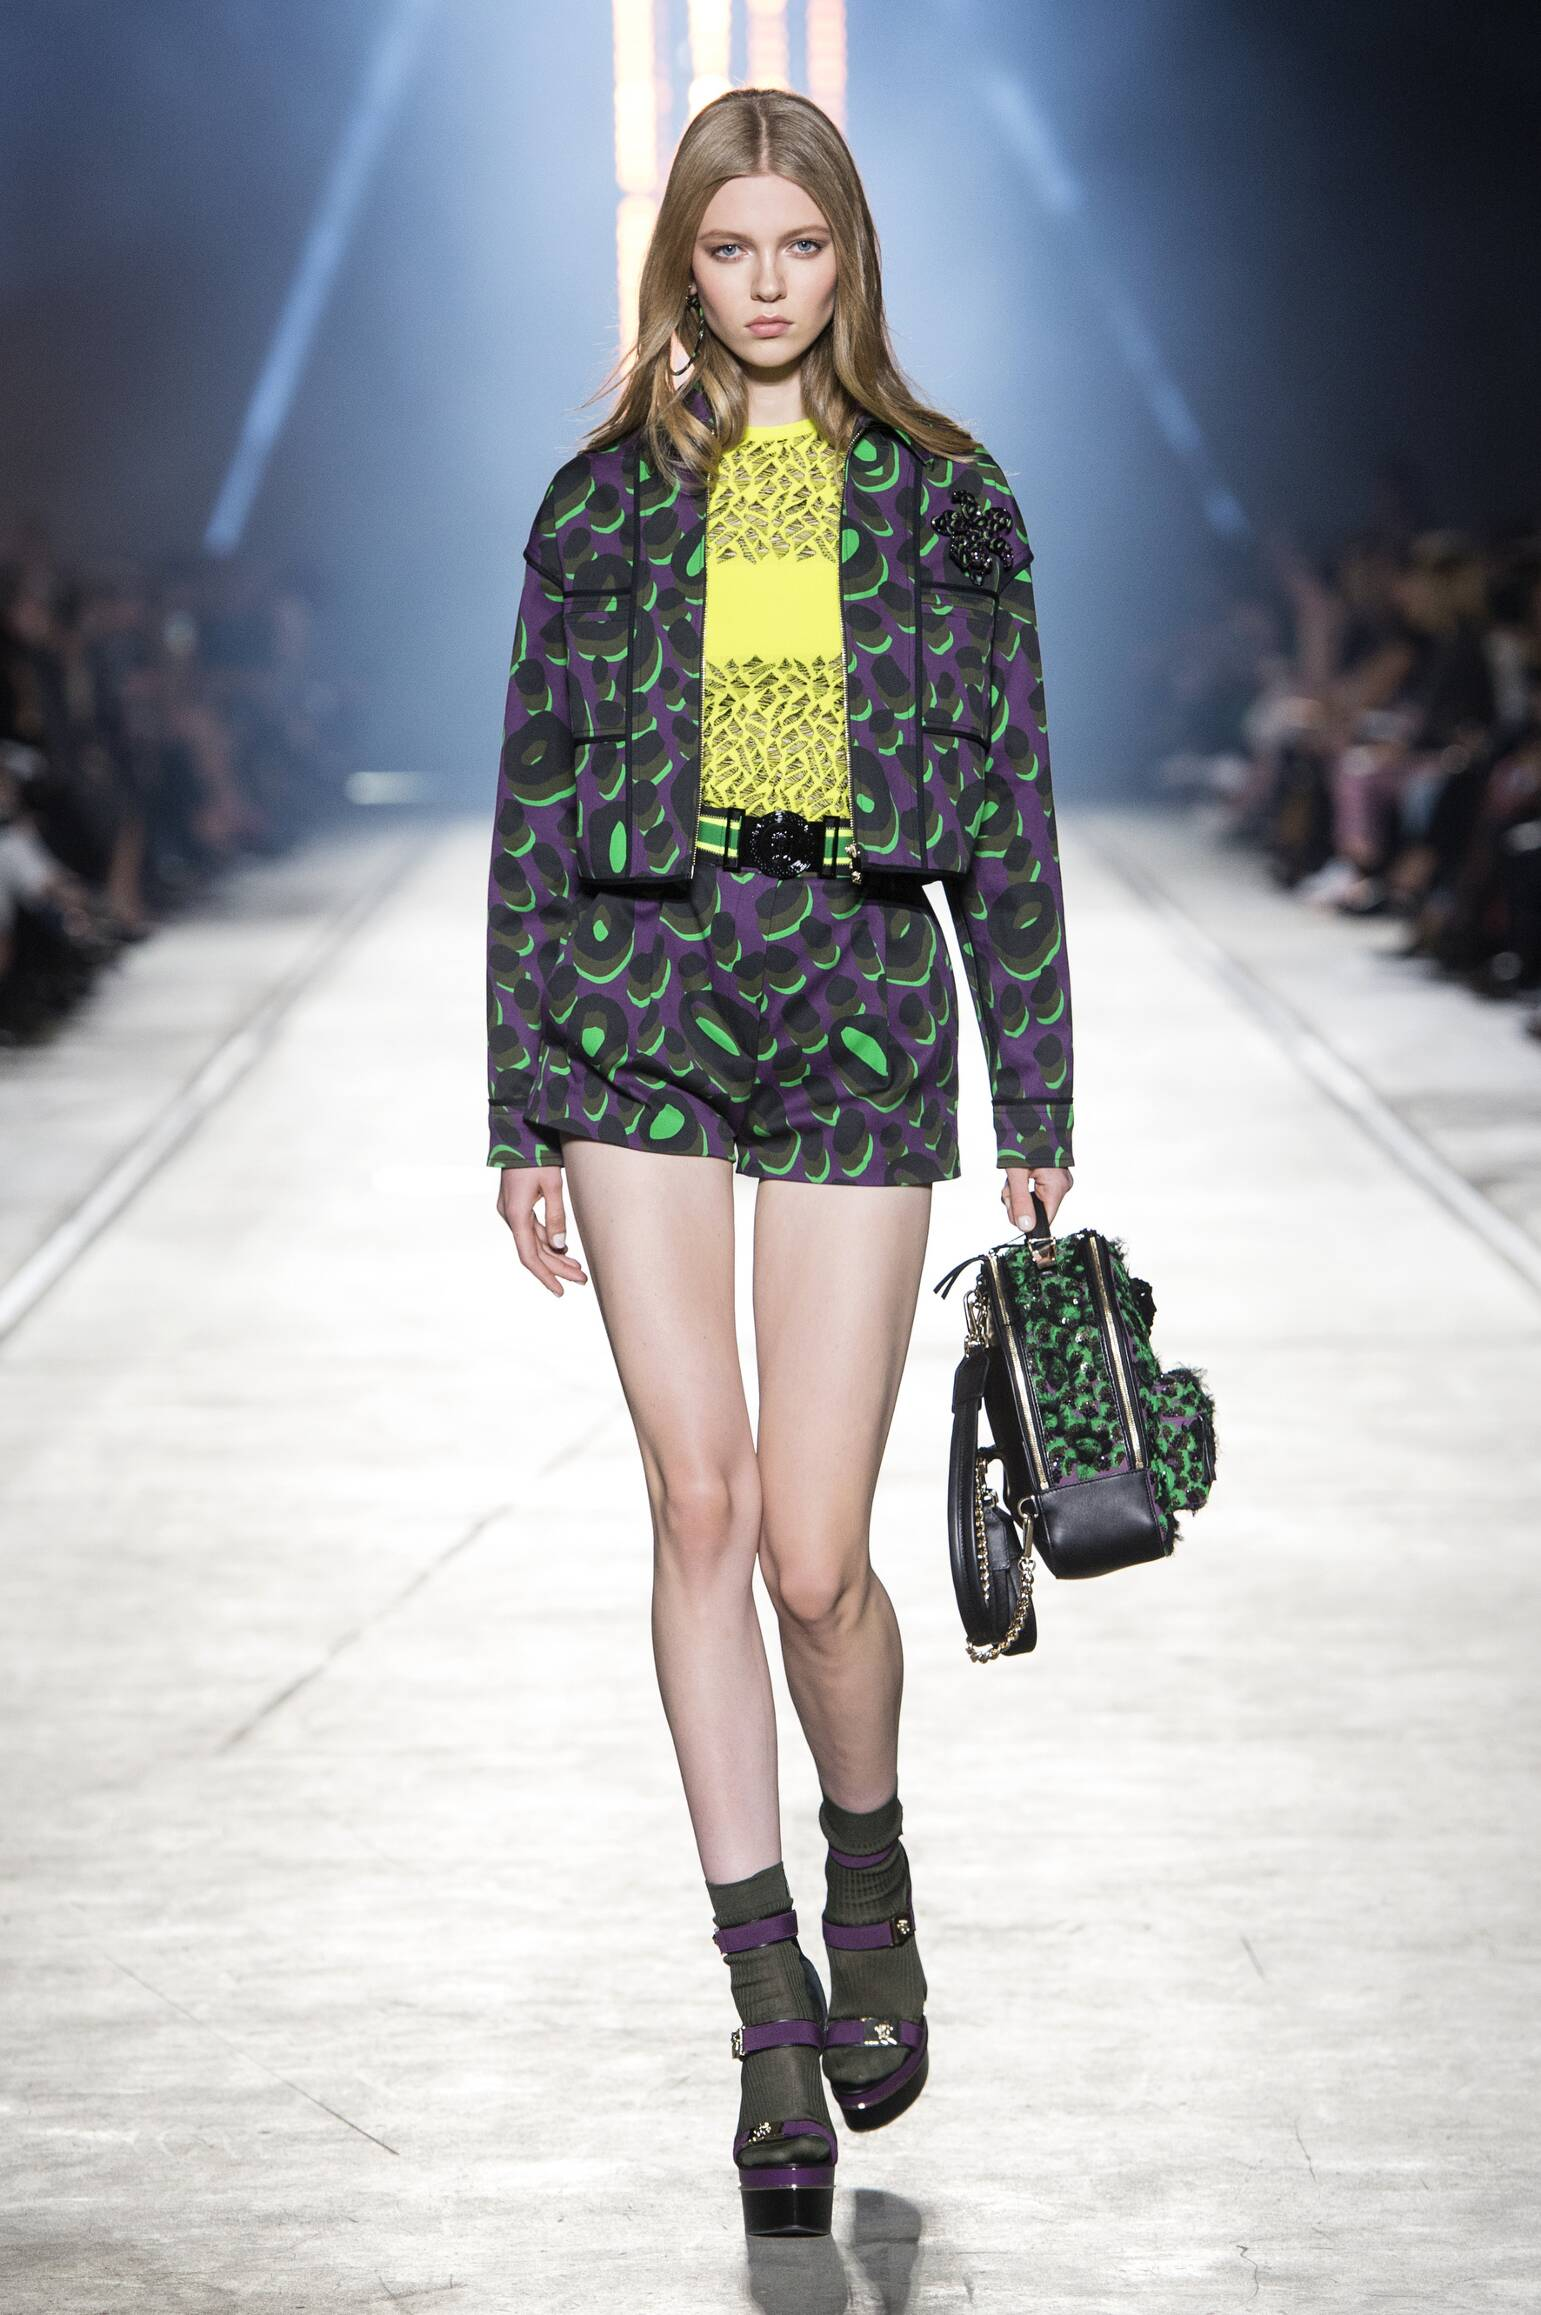 VERSACE SPRING SUMMER 2016 WOMEN'S COLLECTION